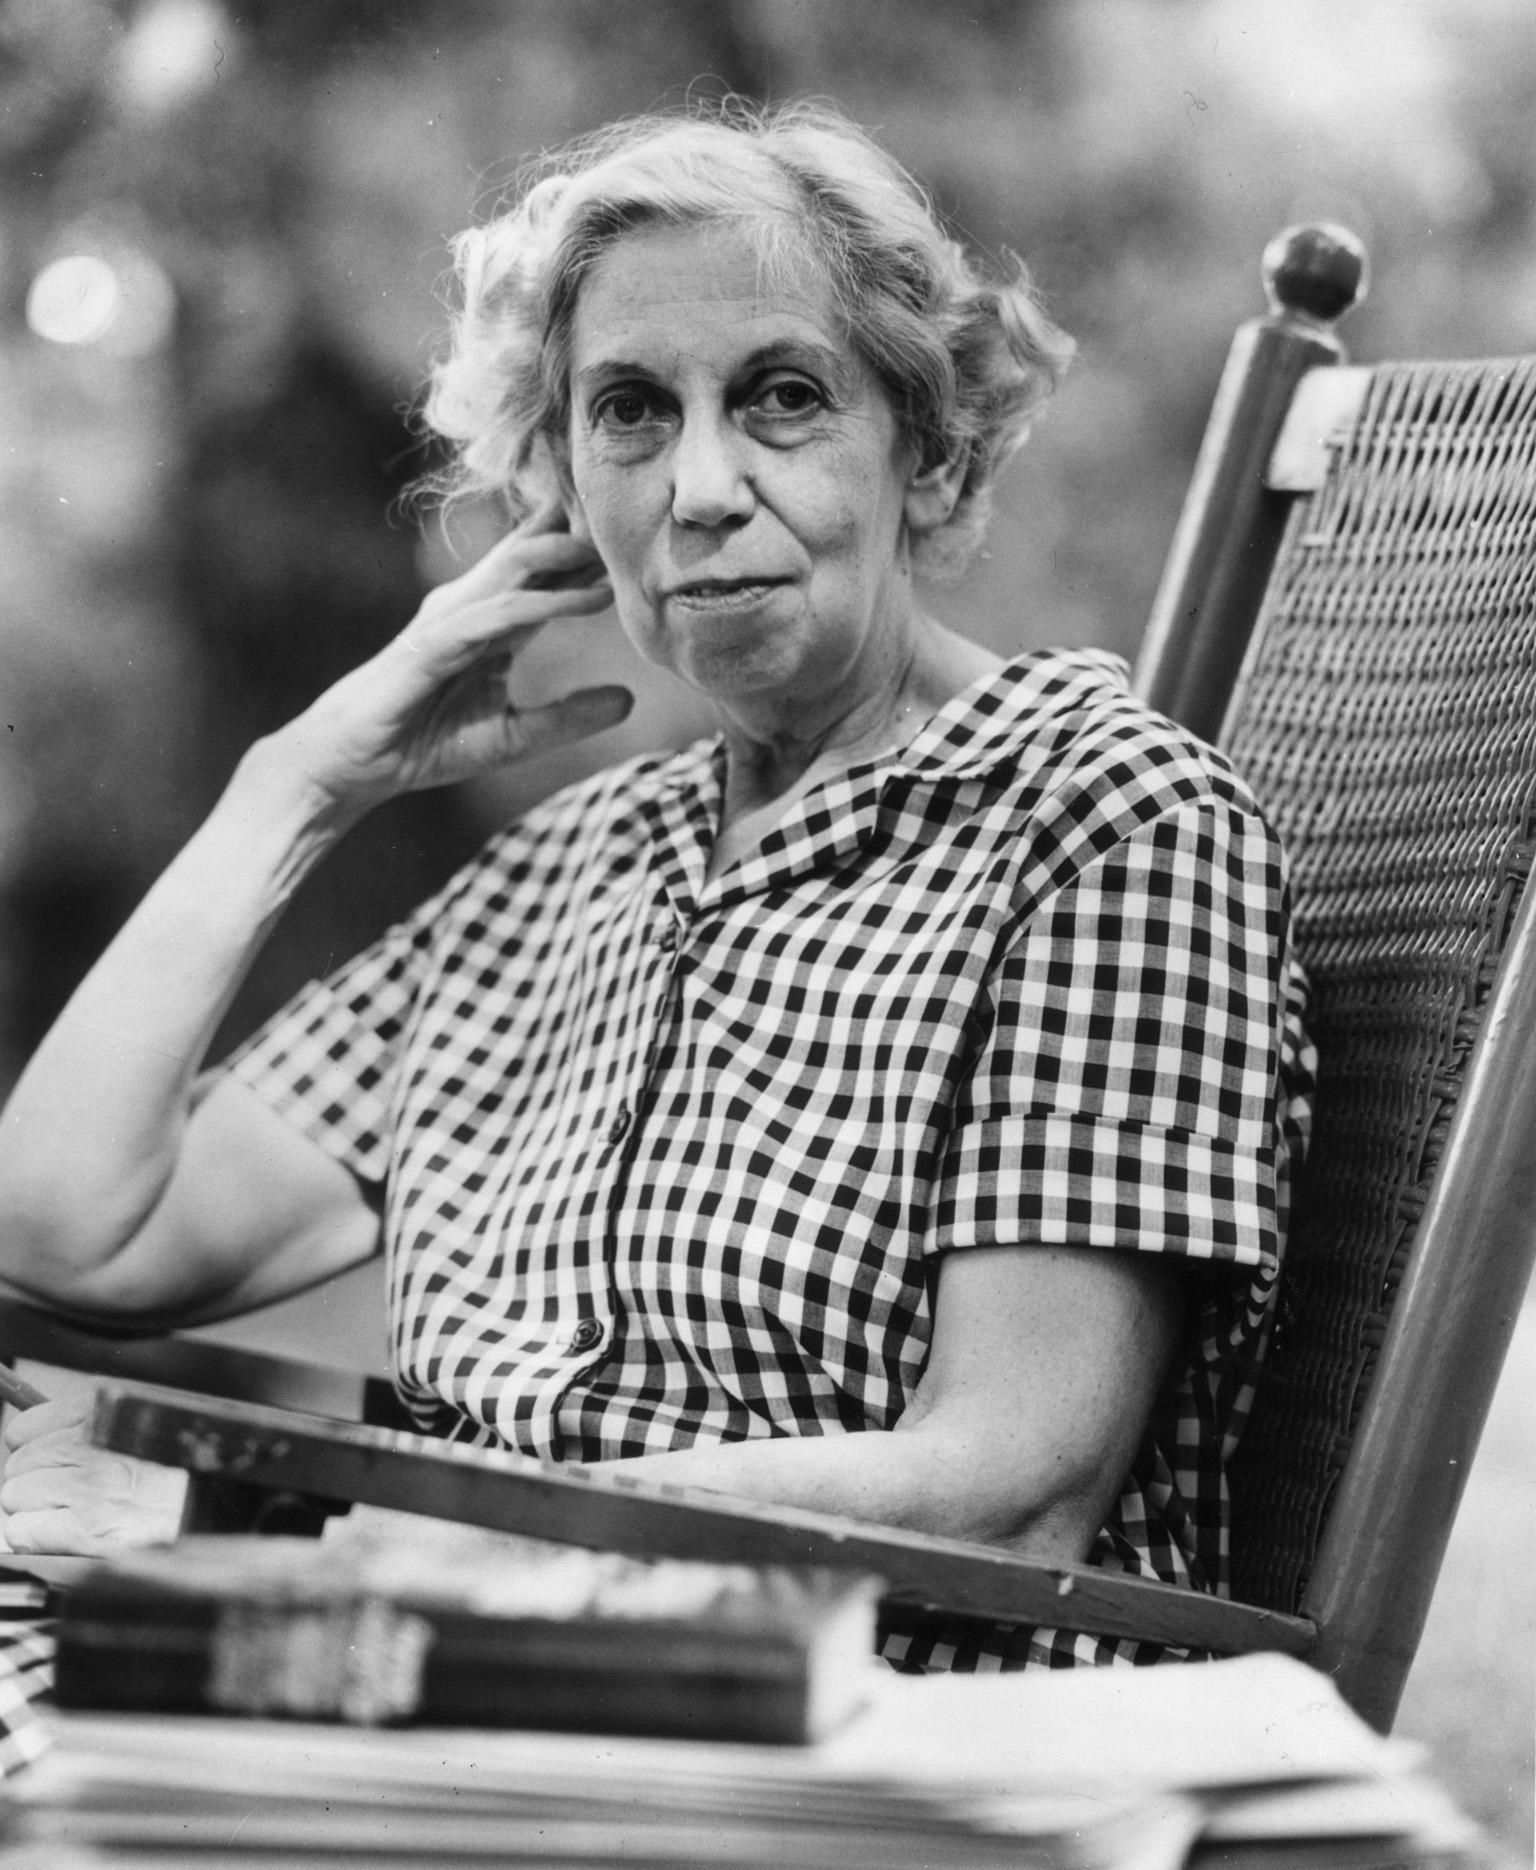 eudora welty one of the south s most famous writers one of i m a part time writer who also loves reading all kinds of genres movies music and long discussions about meaningful topics my friends over